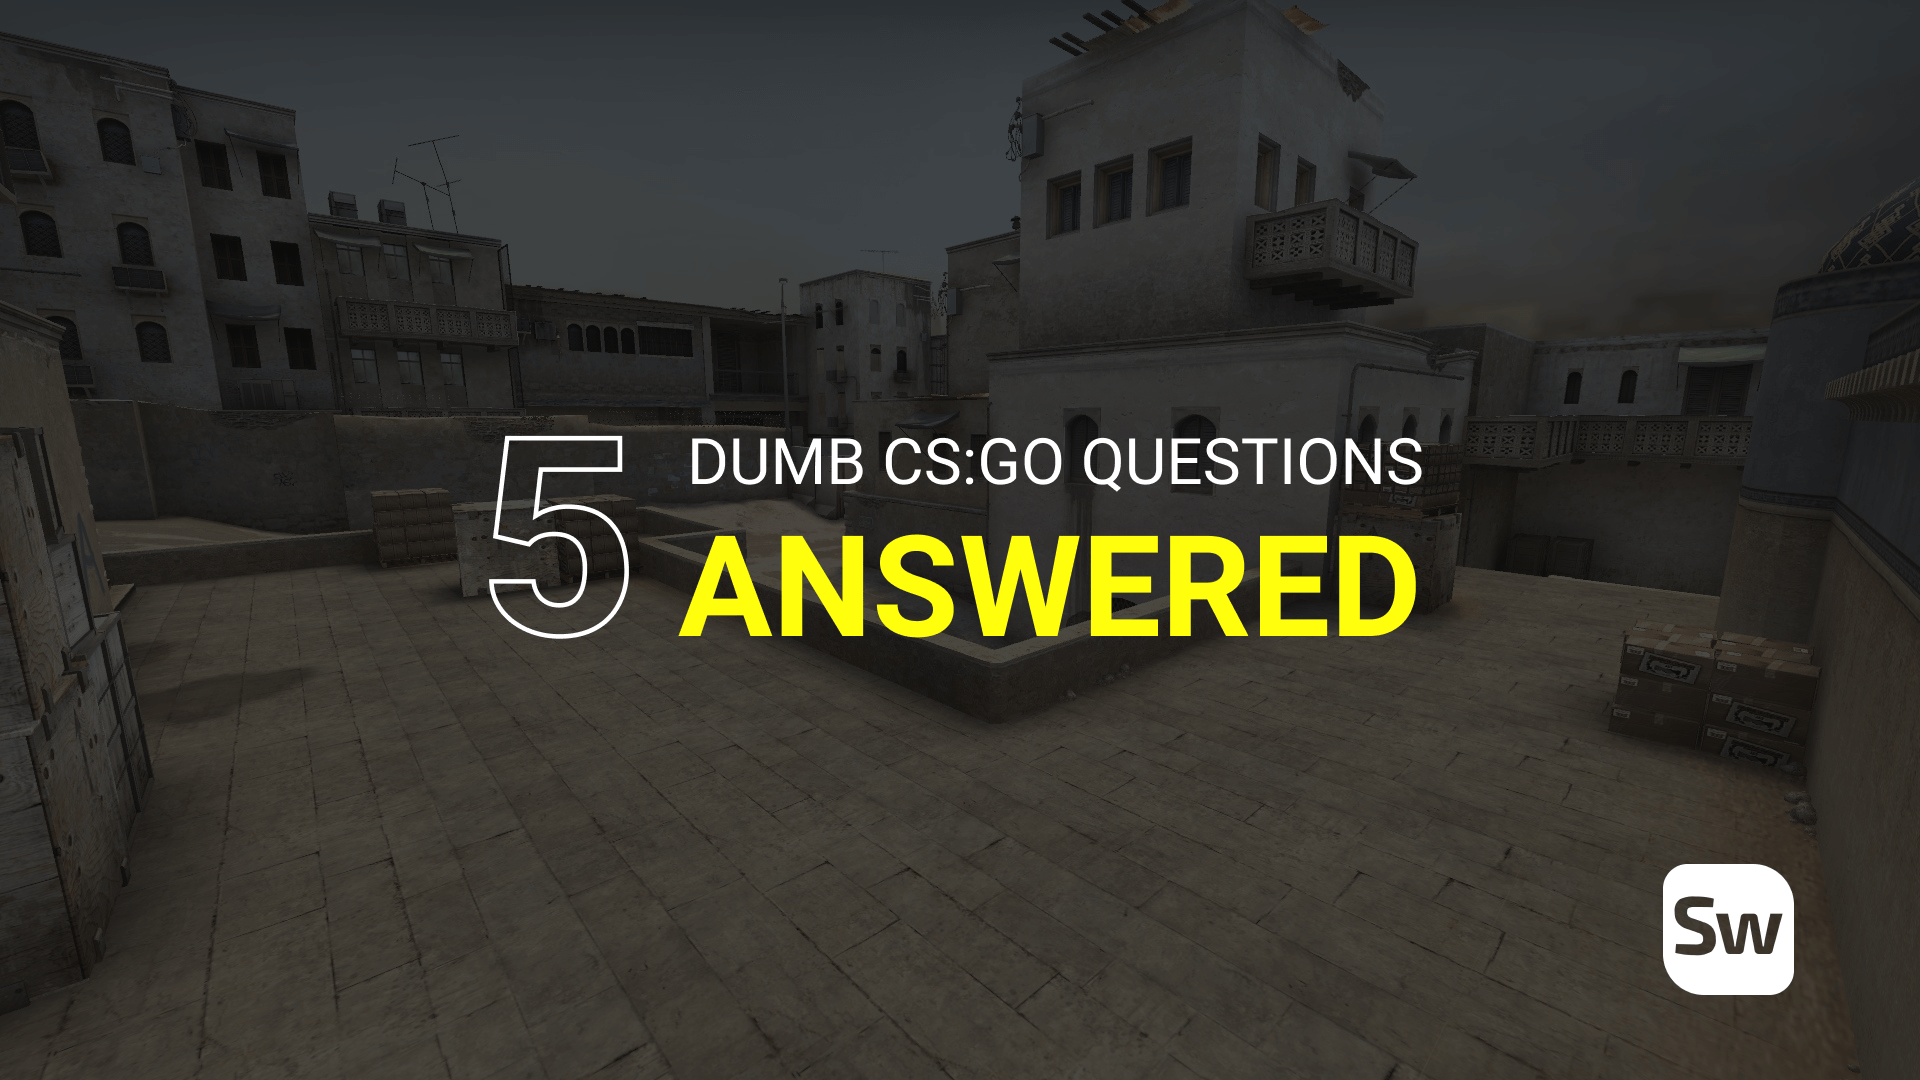 do csgo skins degrade and other dumb questions